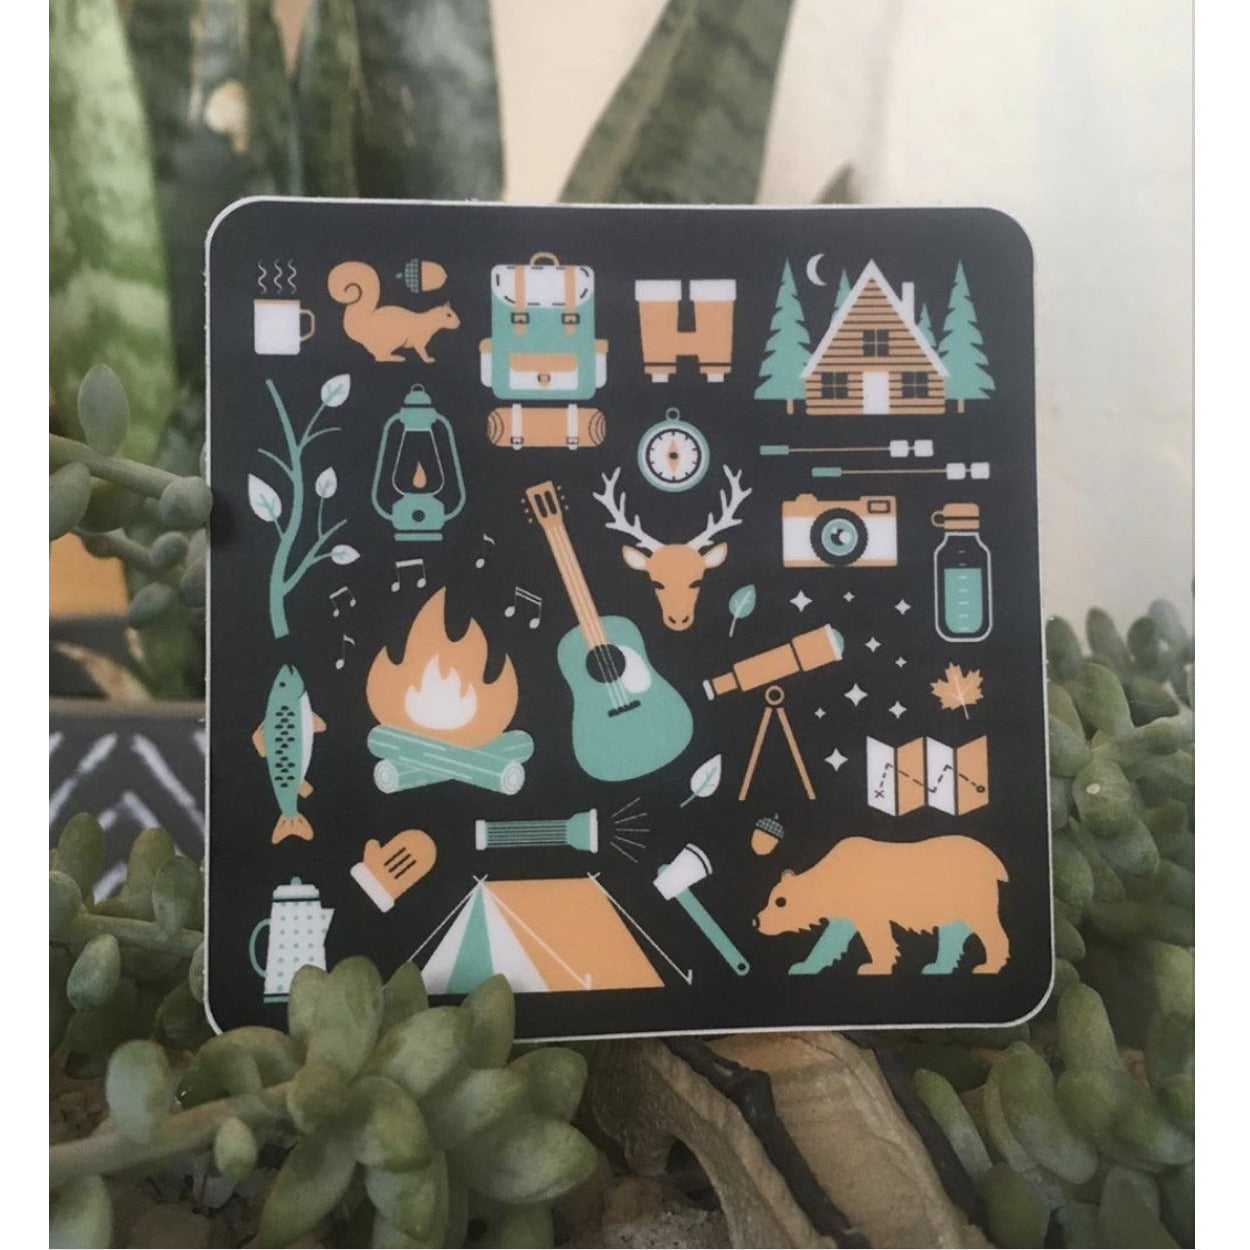 Outdoor Adventure sticker